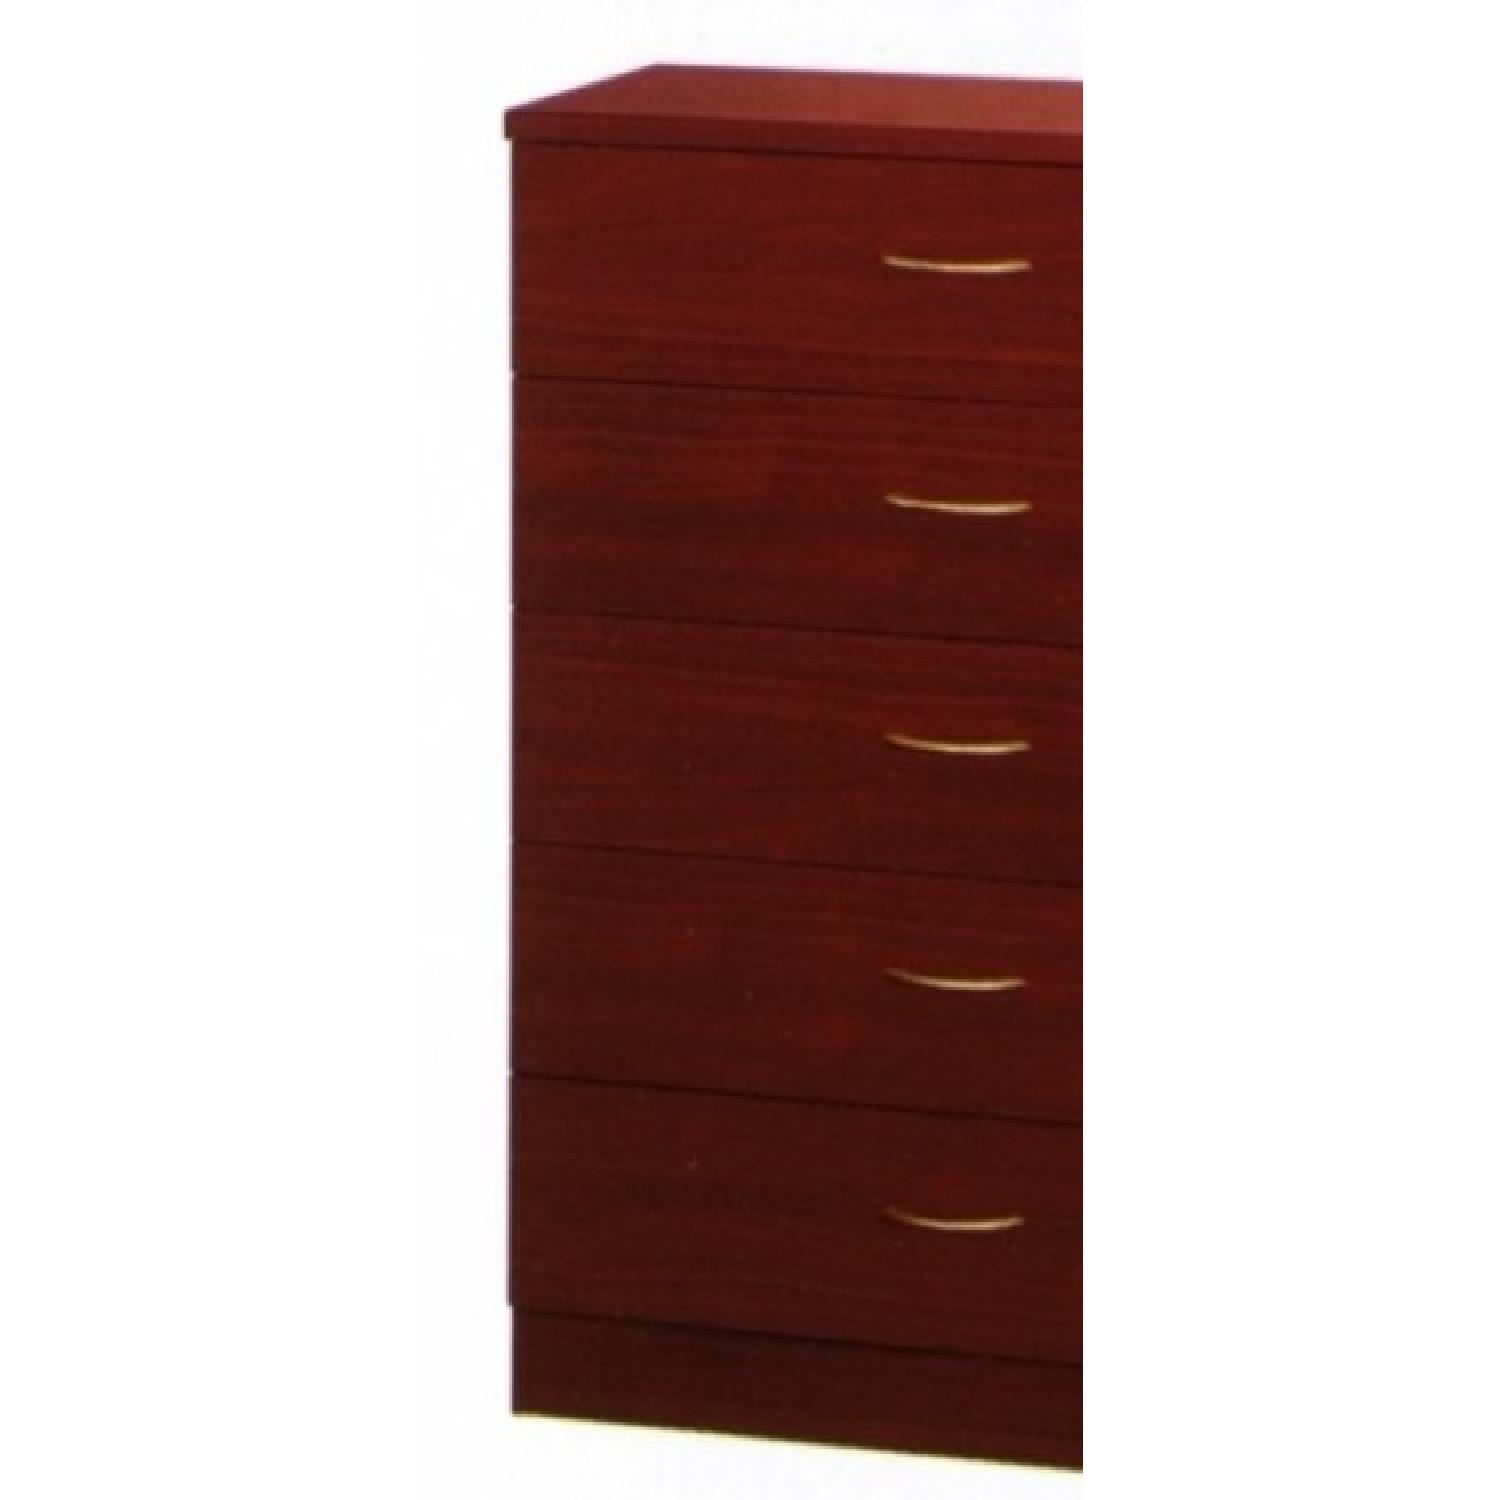 5 Drawer Chest in Mahogany Finish - image-2